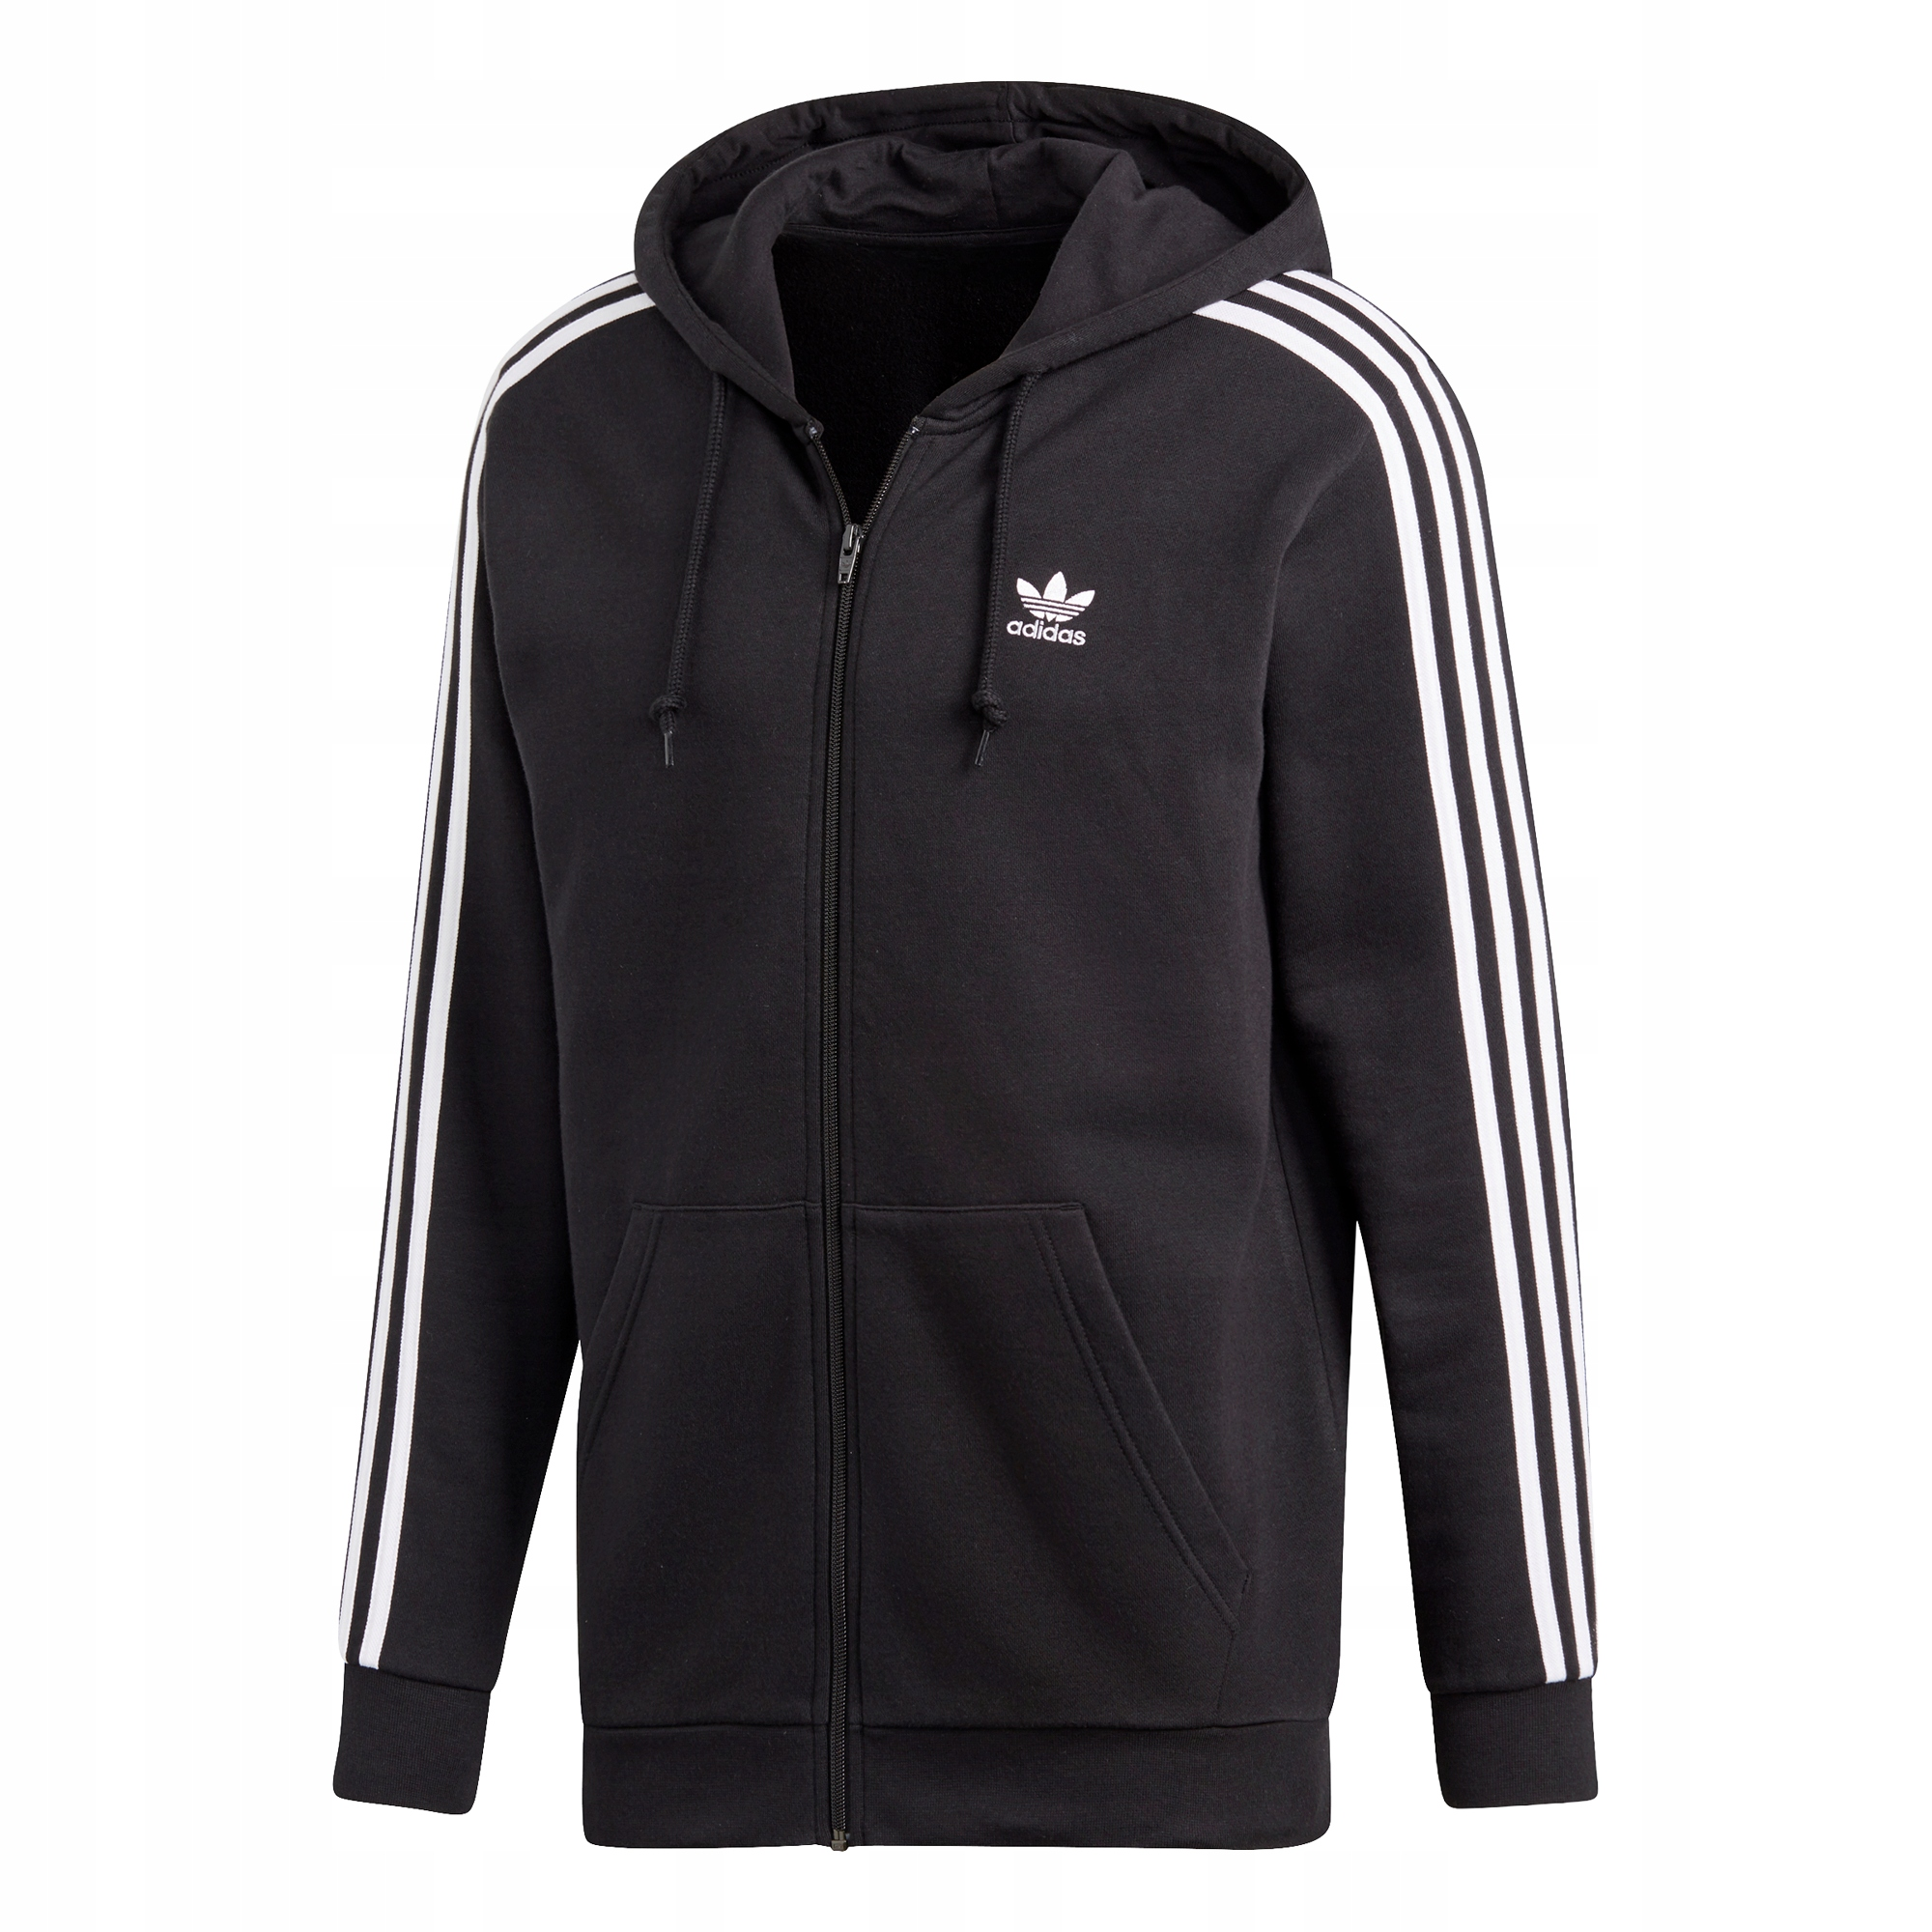 MĘSKA BLUZA ADIDAS PERFORMANCE 3 STRIPES (XXL)